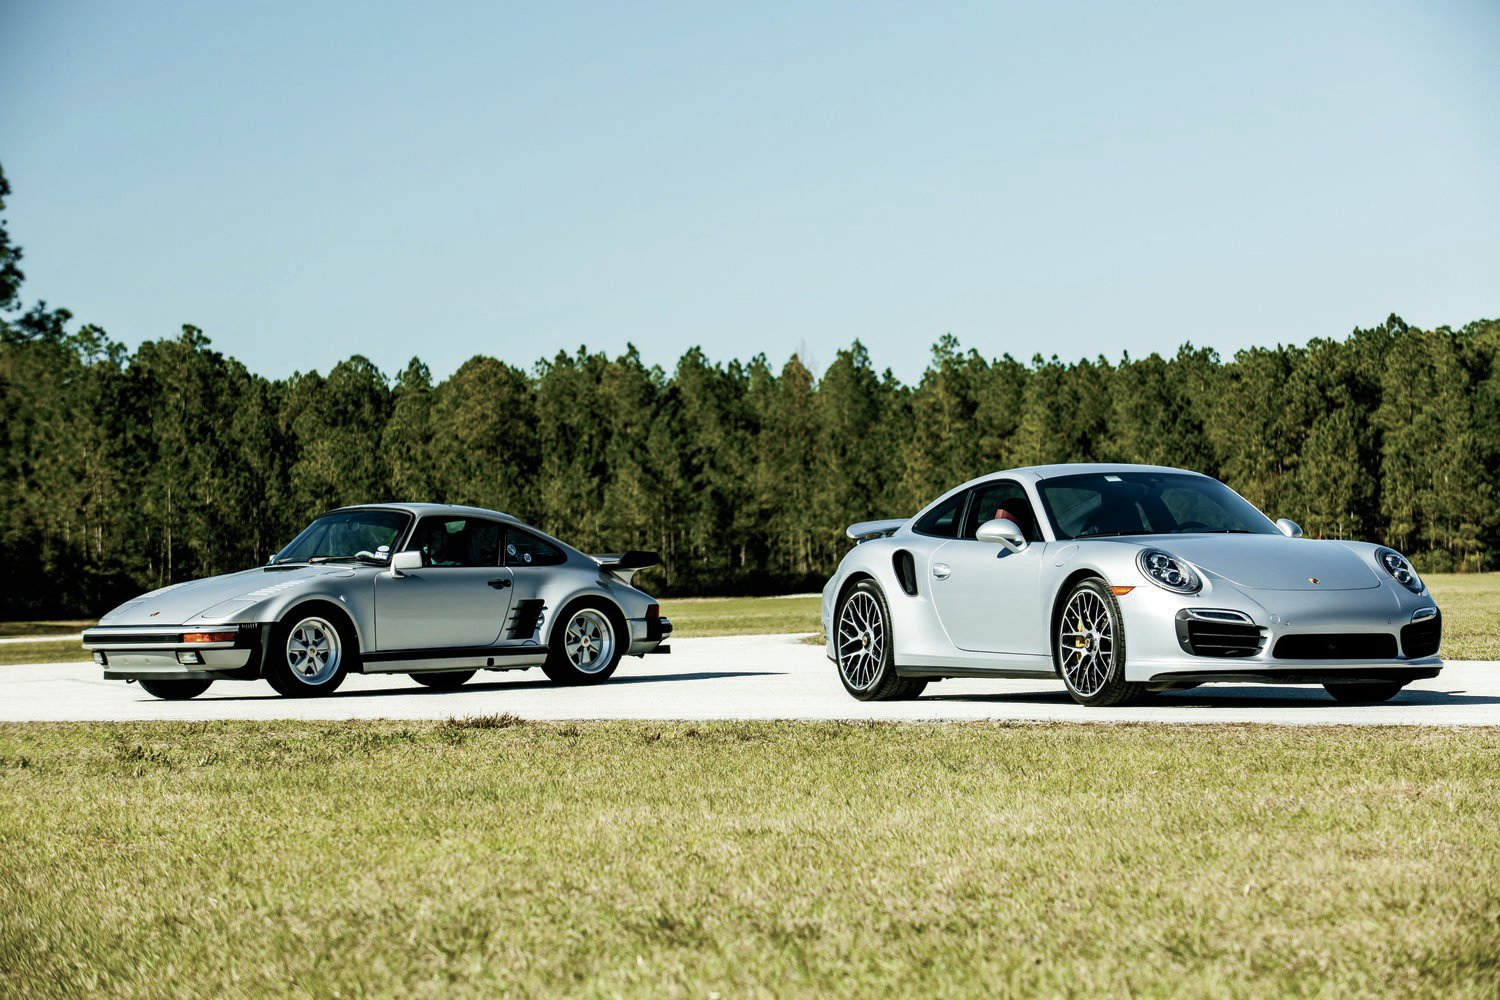 1988 Porsche 911 Turbo With 2014 Porsche 911 Turbo2